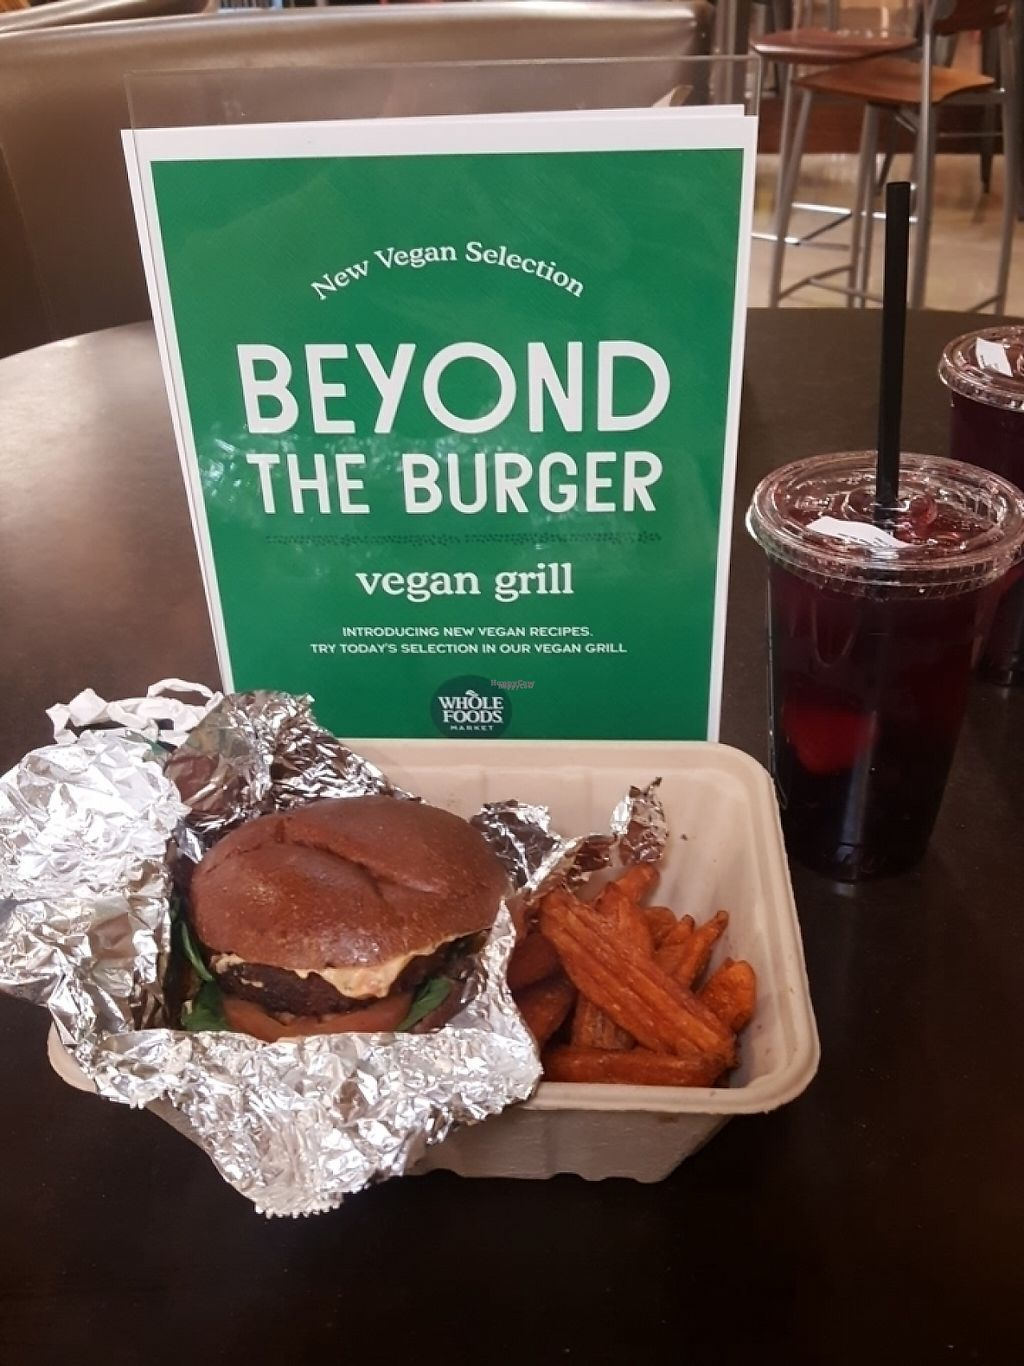 """Photo of Whole Foods Market  by <a href=""""/members/profile/VegManda"""">VegManda</a> <br/>The Beyond Burger from the Grill  <br/> April 23, 2017  - <a href='/contact/abuse/image/12896/251351'>Report</a>"""